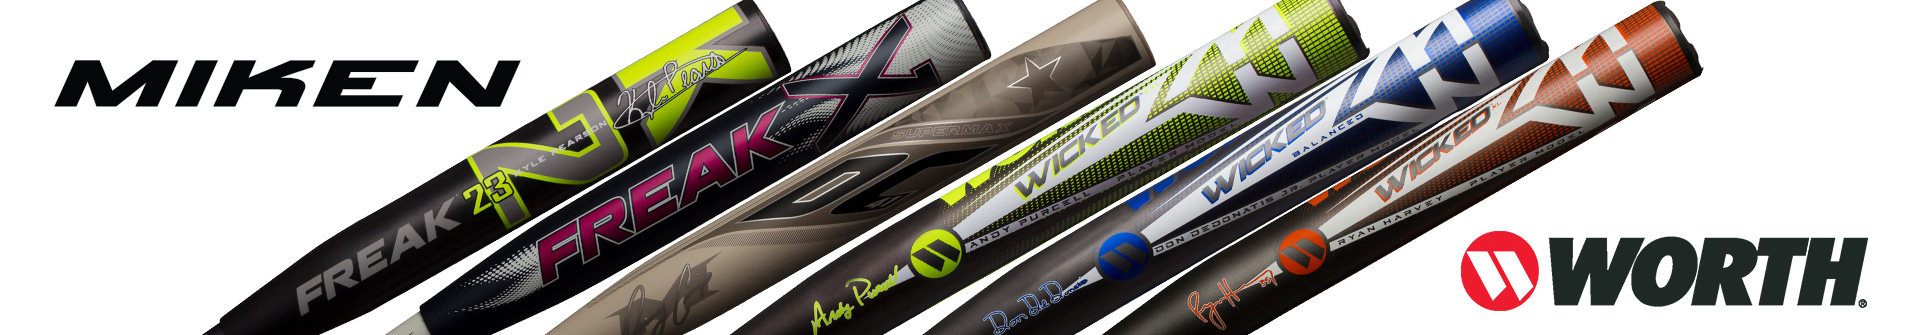 Elevate Your Game With The New Softball Slo-Pitch Bats From Miken & Worth Available For Sale At your Closest Source For Sports Baseball Store Near You